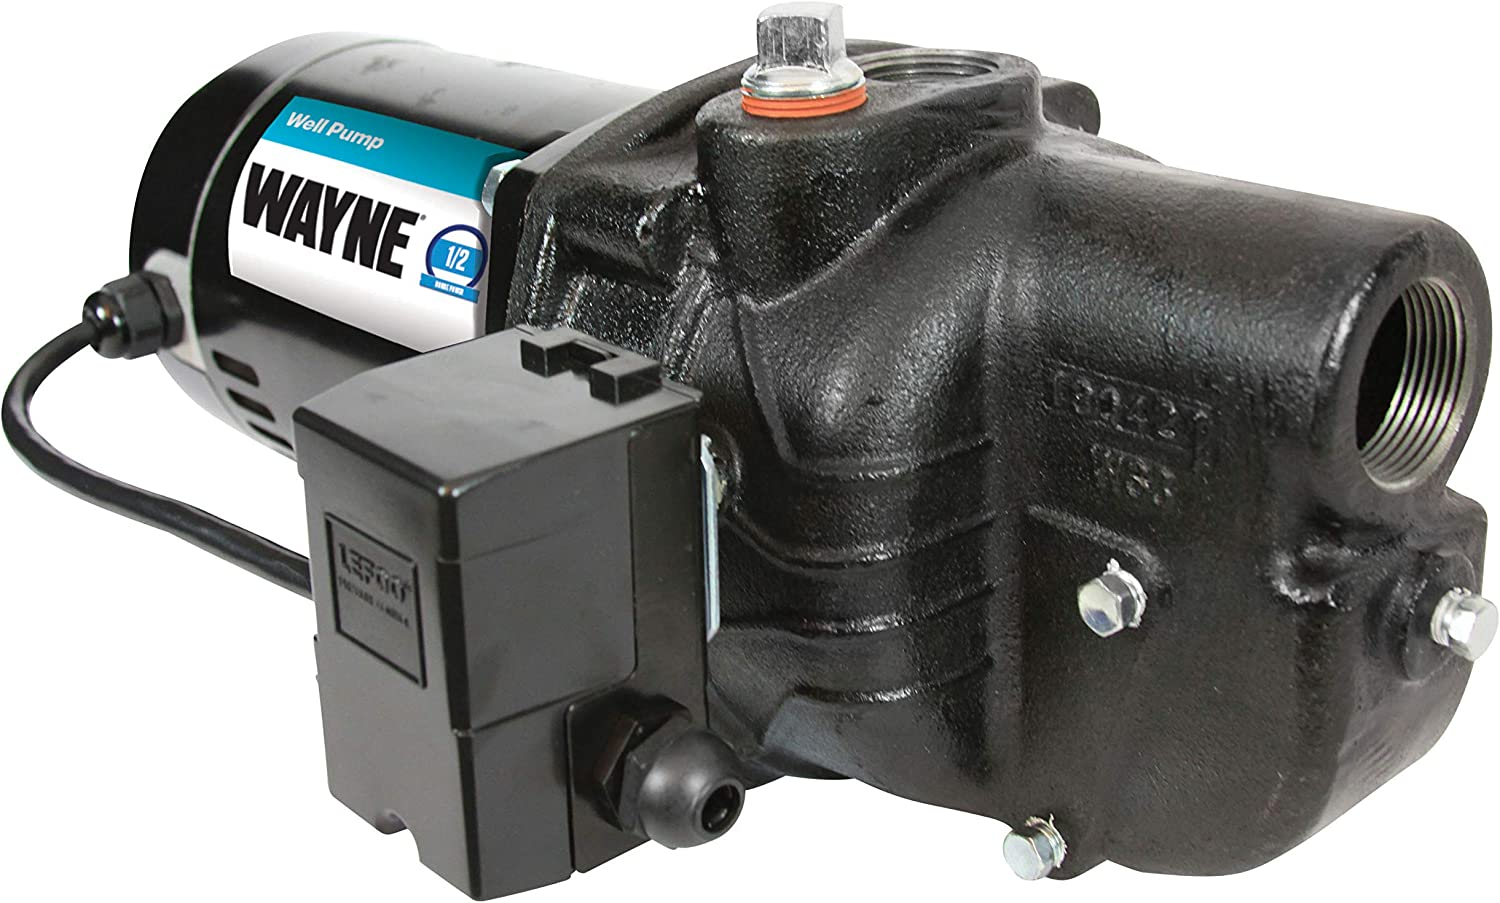 Wayne SWS50, 56907-WYN2, 1/2 HP Shallow Well Jet Pump, Black